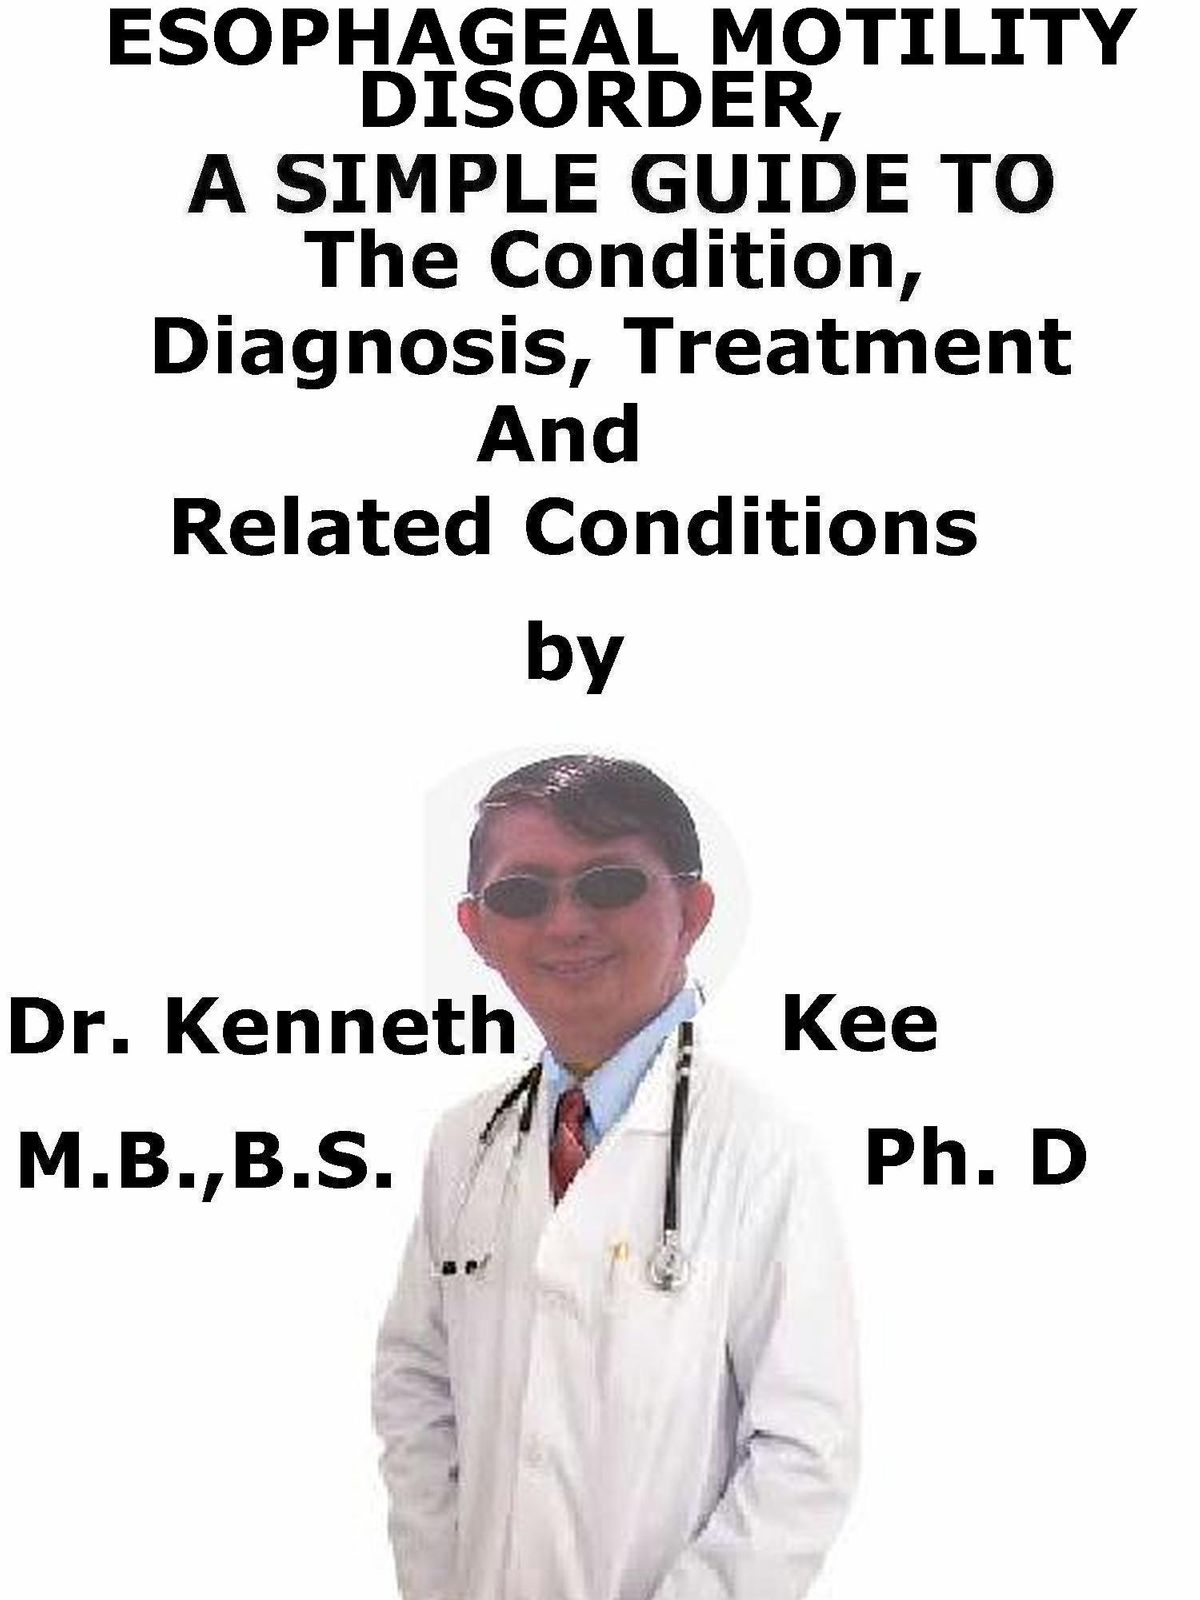 What Is Esophageal Motility Disorder With Pictures Manual Guide